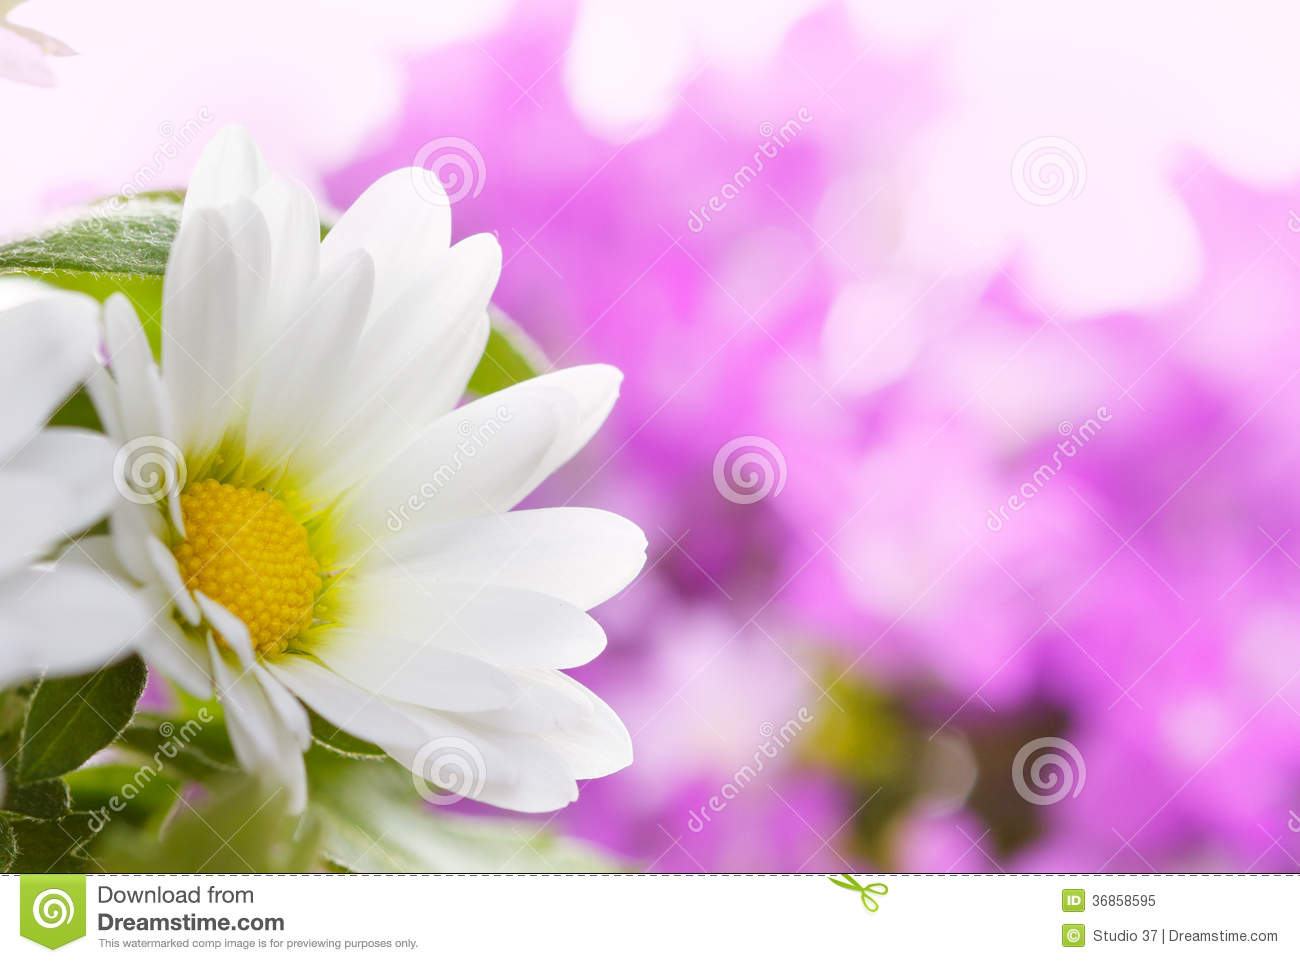 white flower details royalty free stock photo image